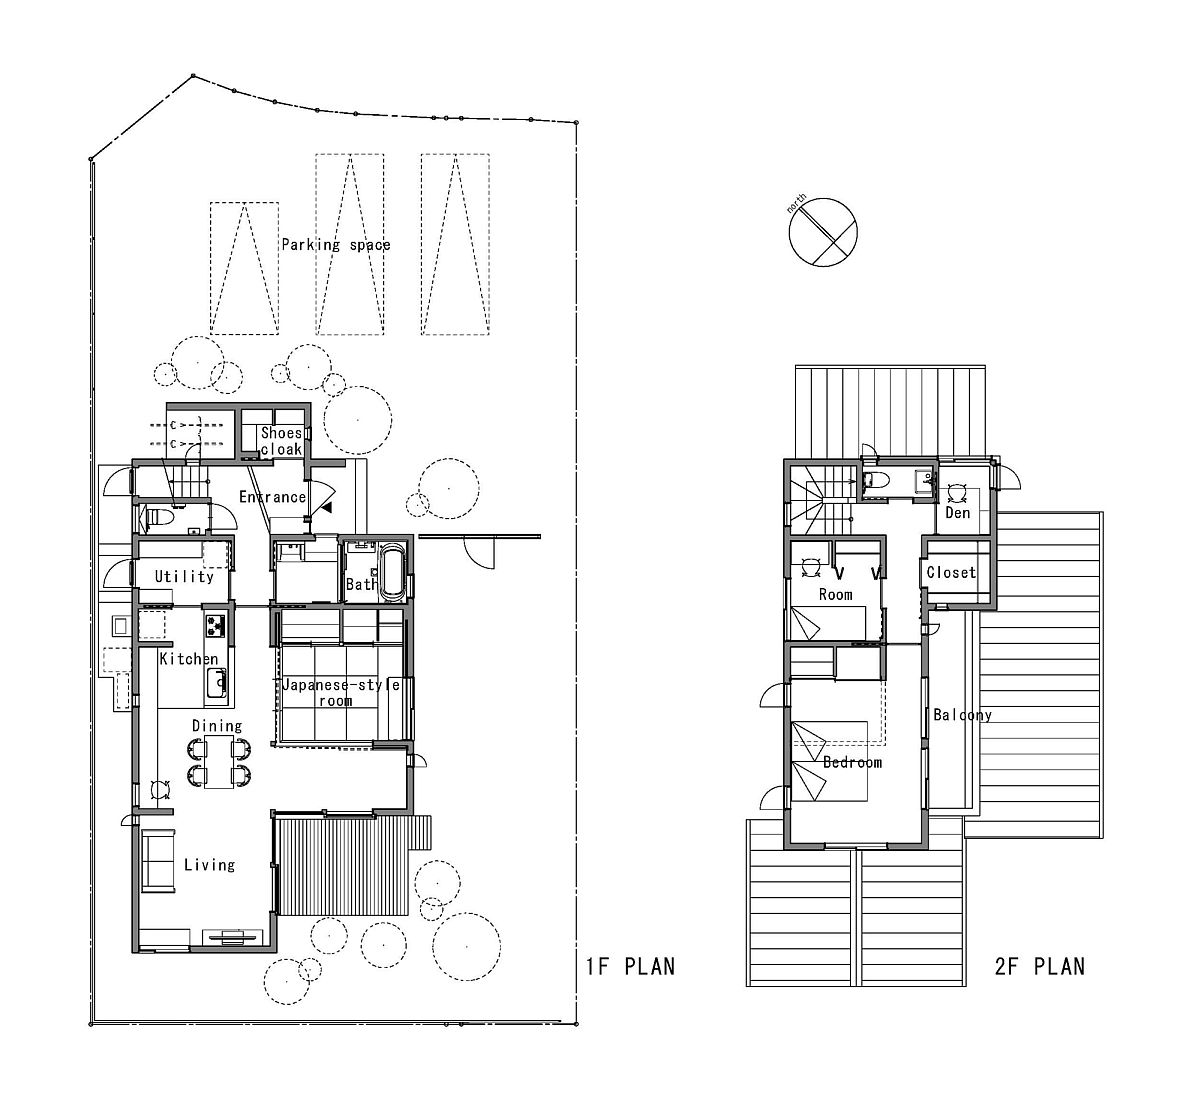 Floor plan of modern family home in Japan connected with the view outside